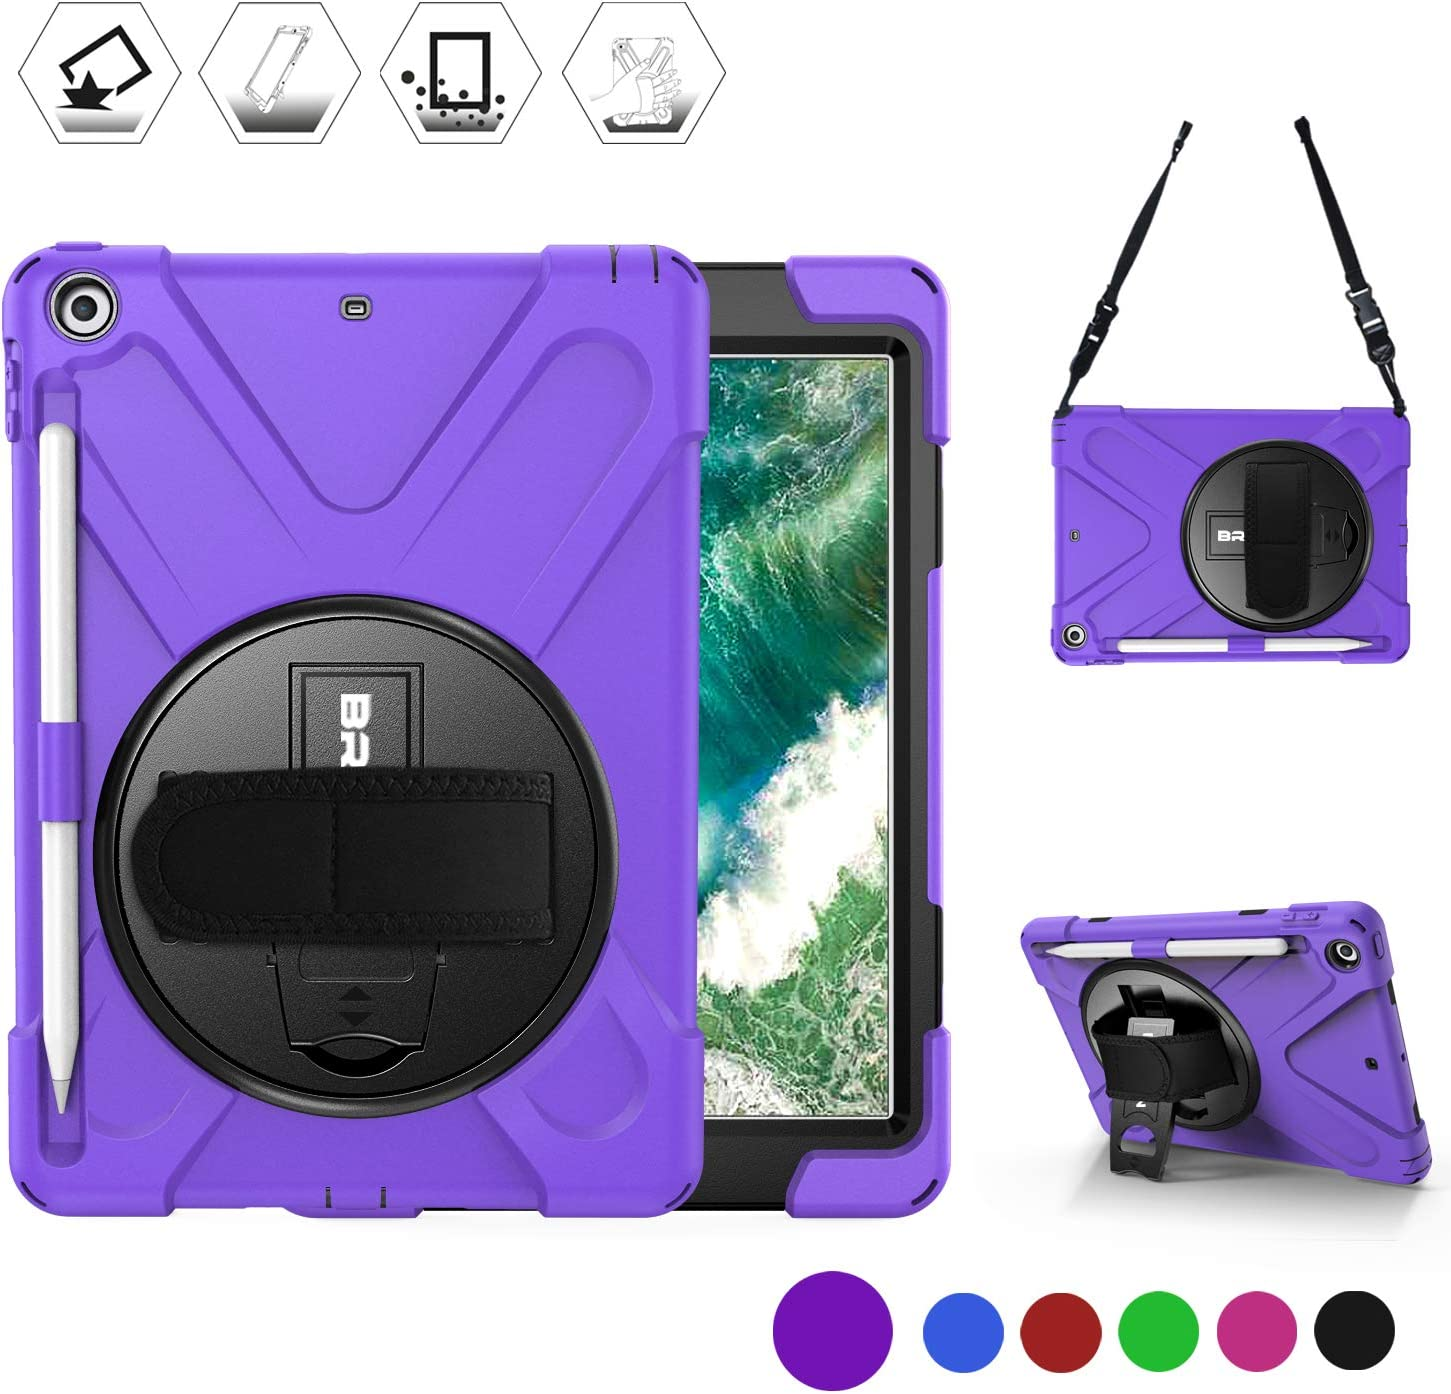 BRAECN Case for iPad 9.7 Inch 2018/2017, Heavy Duty Shock-absorbing Protective Case Cover with Pen Holder, Handle Hand Strap, Kickstand and Shoulder Strap for iPad 9.7 5th/6th Generation Tablet-Purple